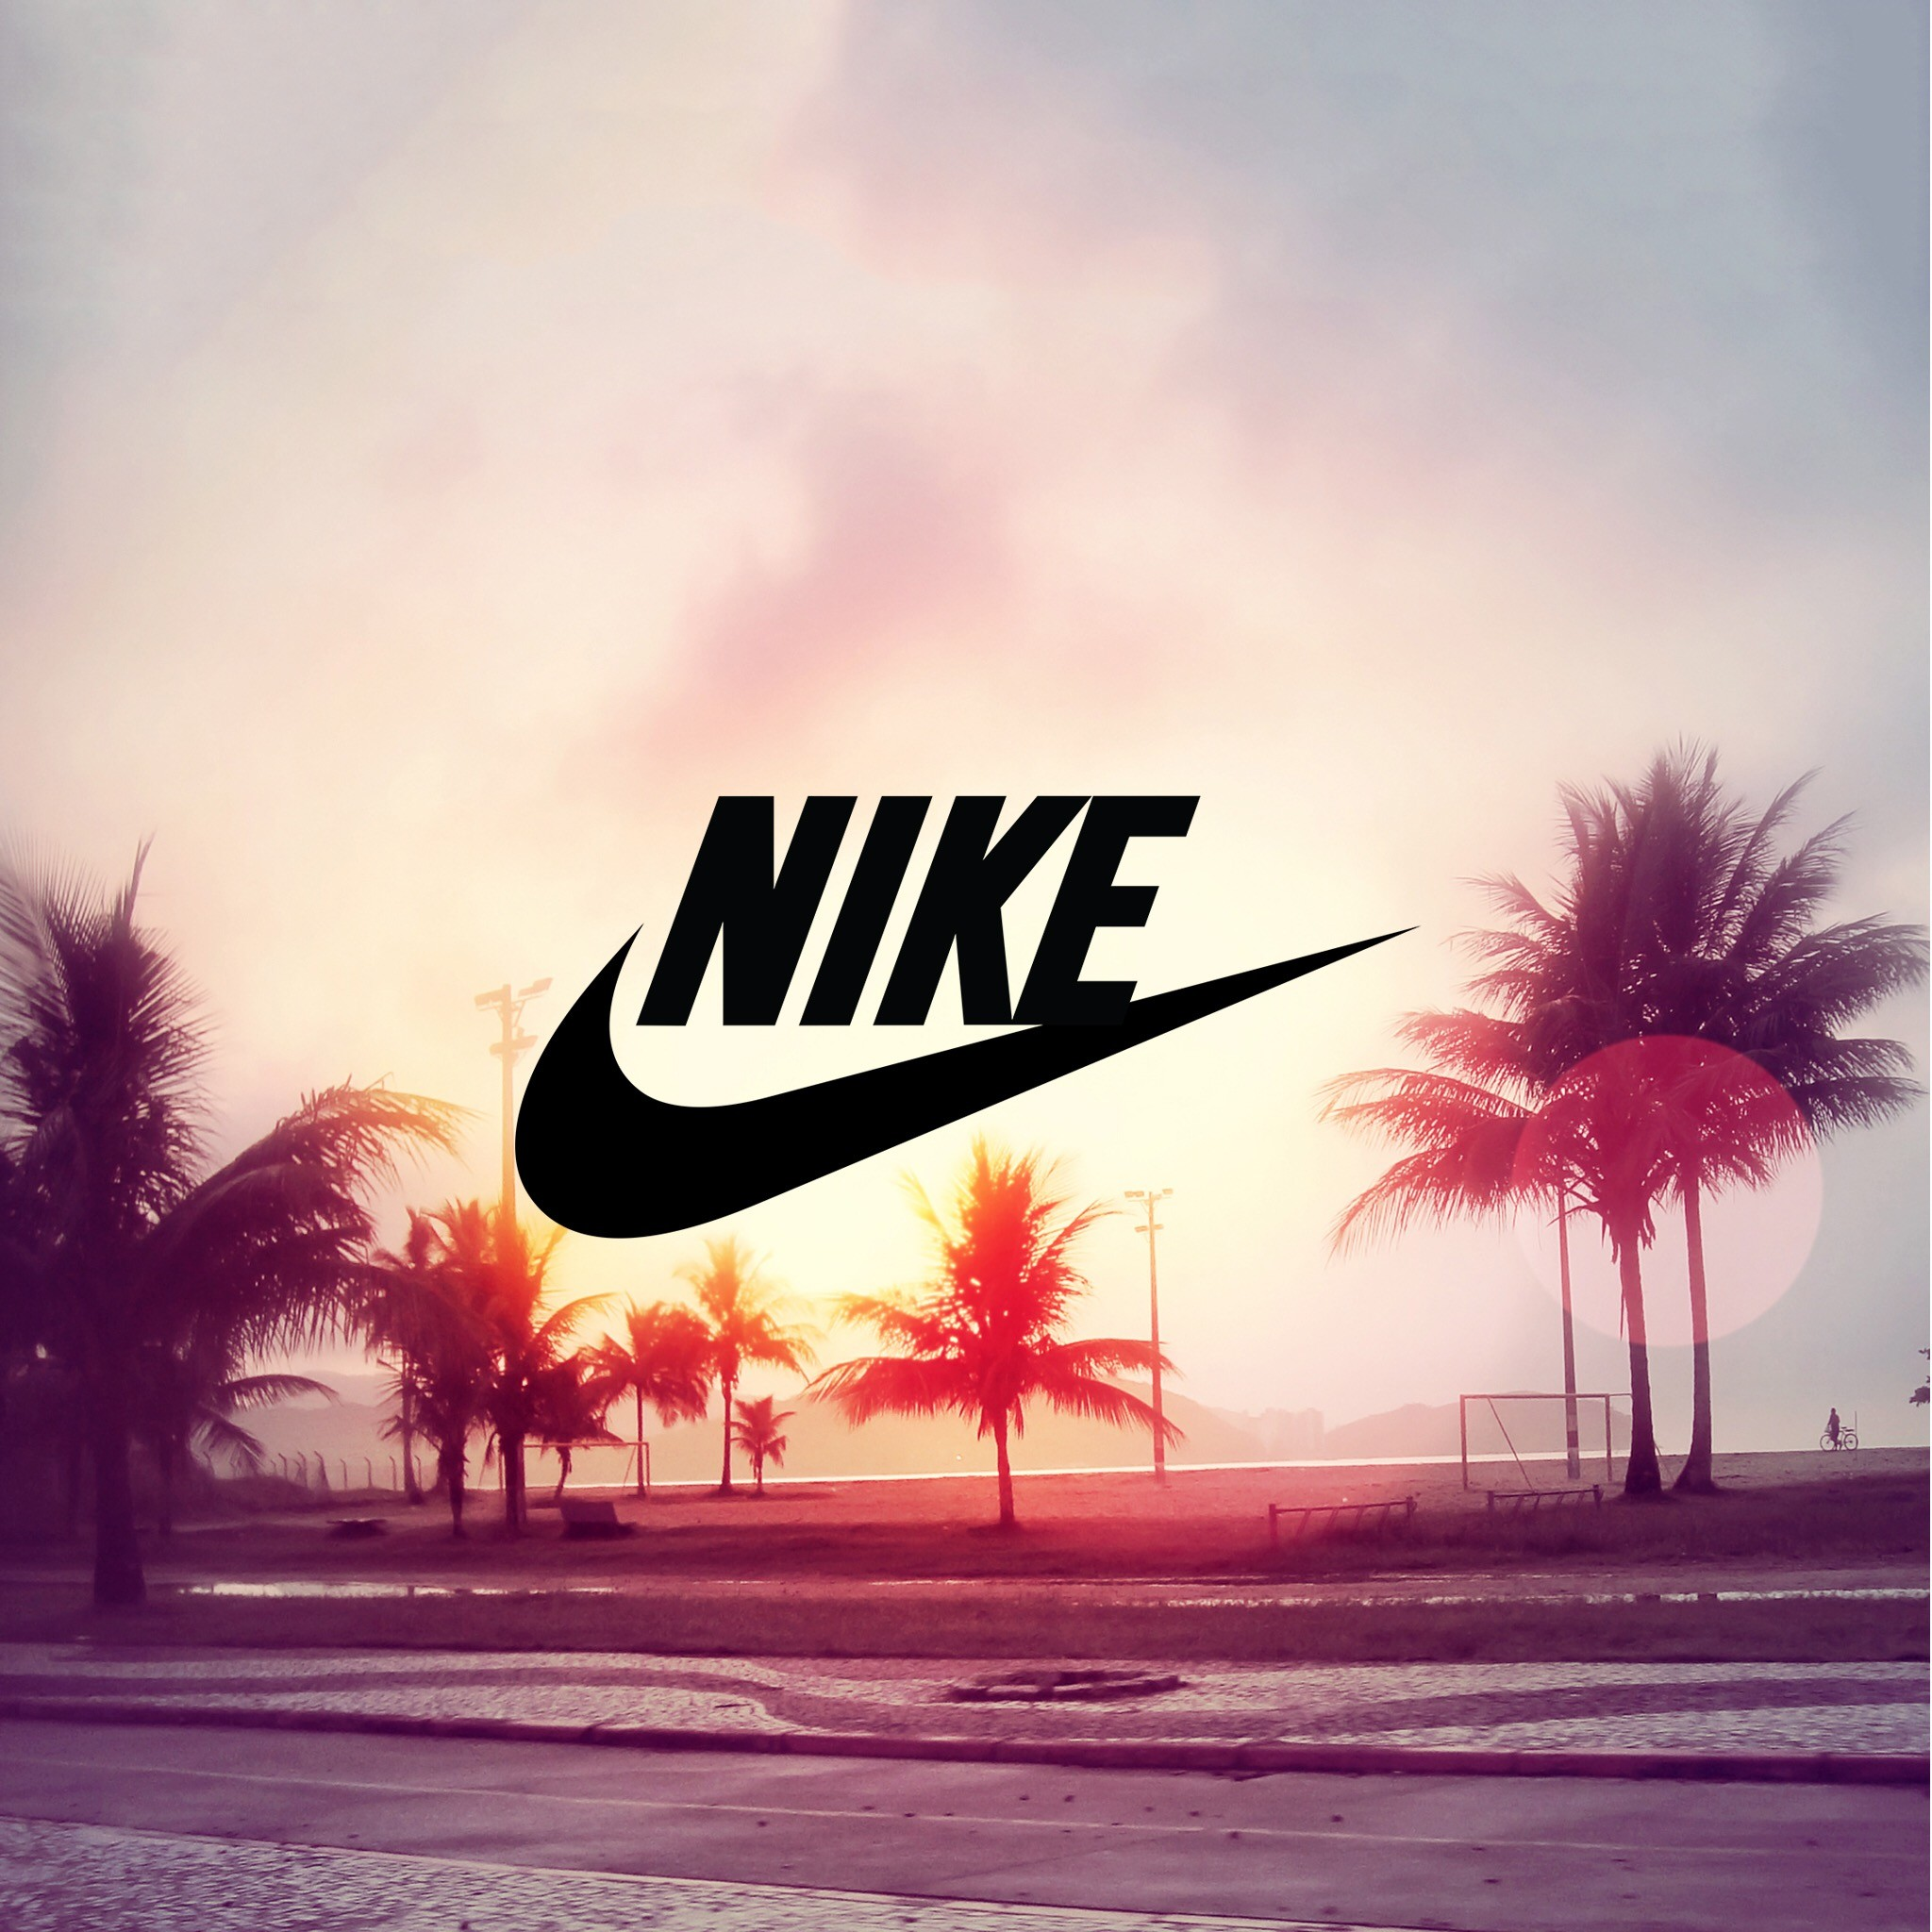 2048x2048 Go places while u still have time... Nike WallpaperNike ...